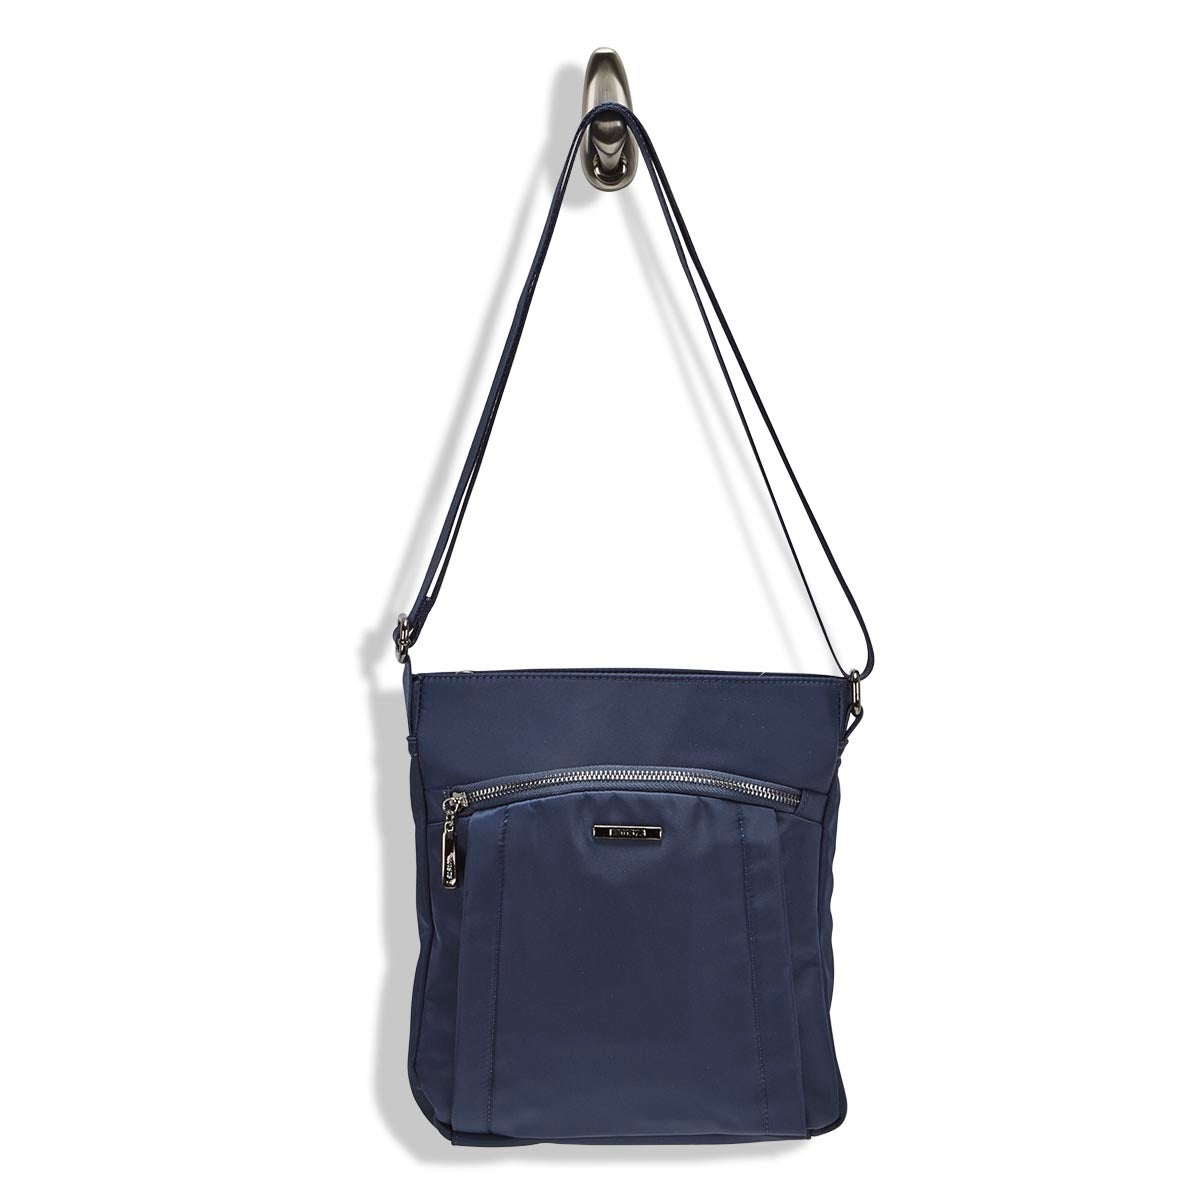 Lds Roots73 navy north/south cross body